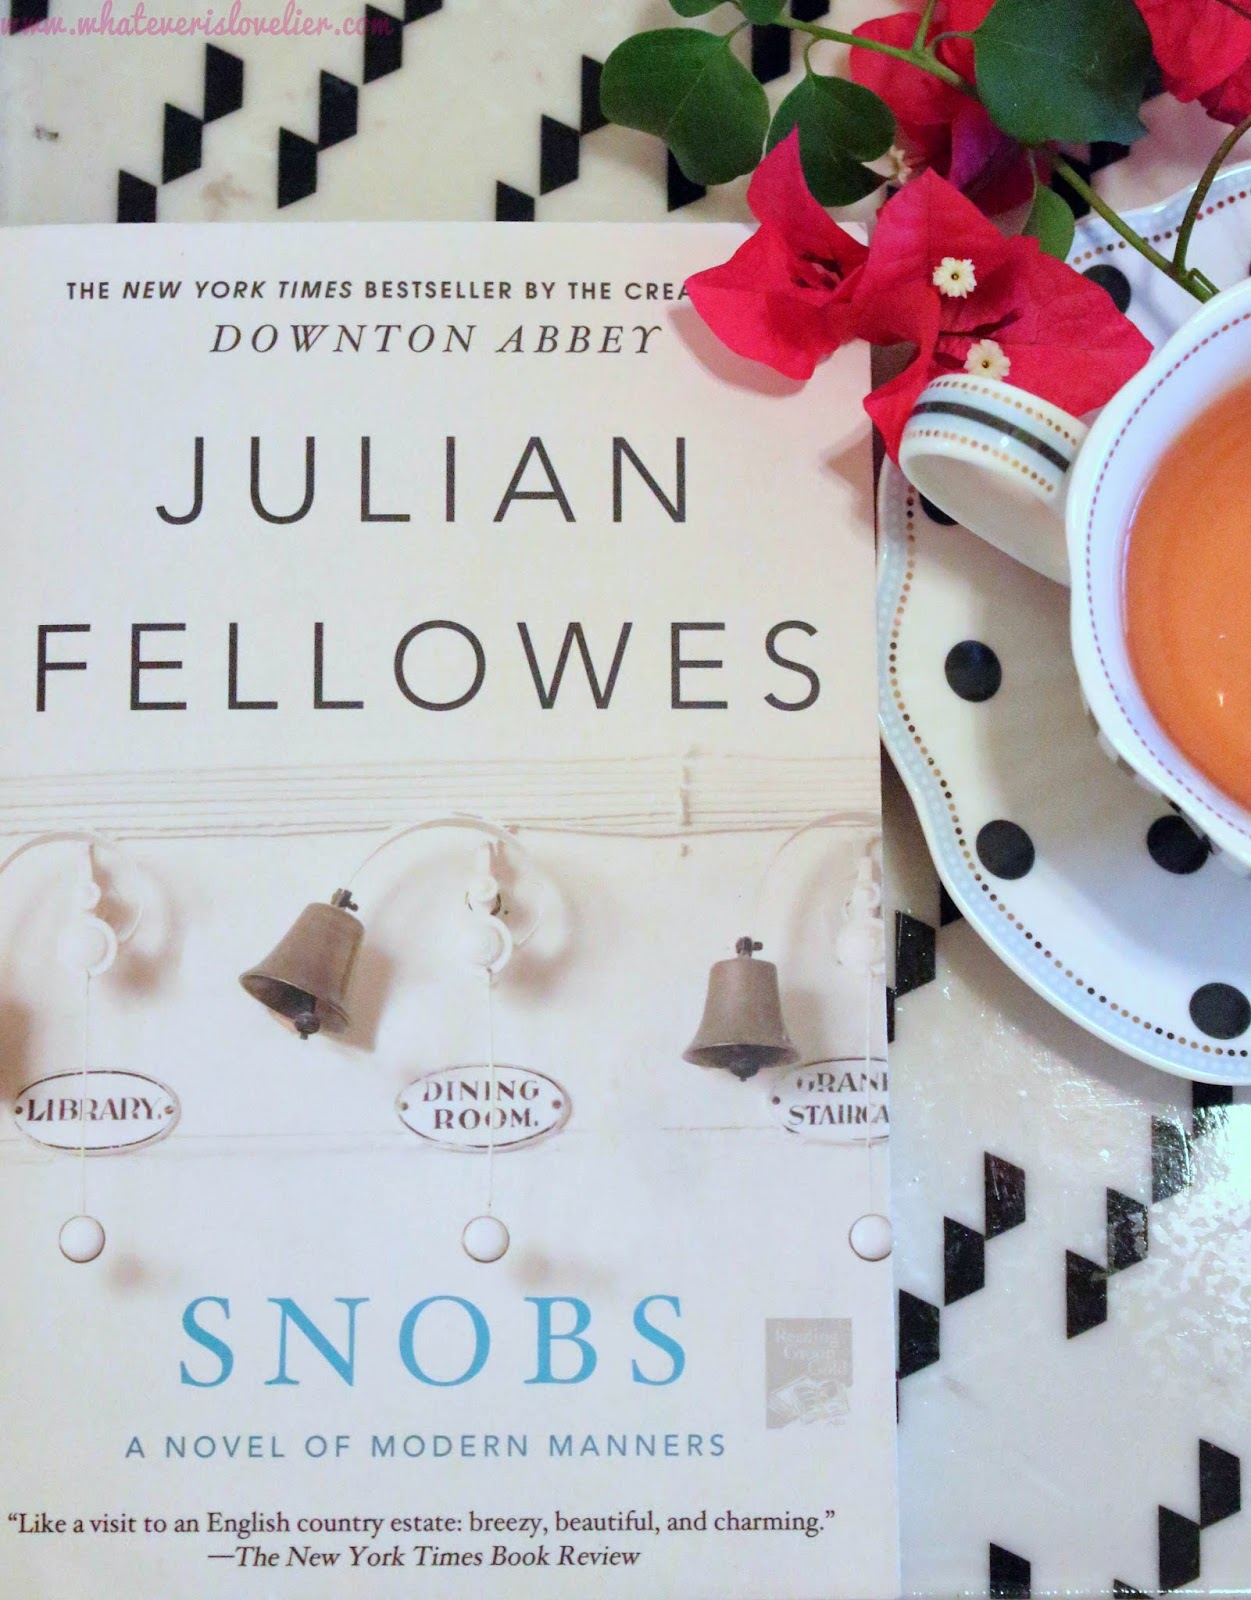 Book Review: Snobs by Julian Fellowes